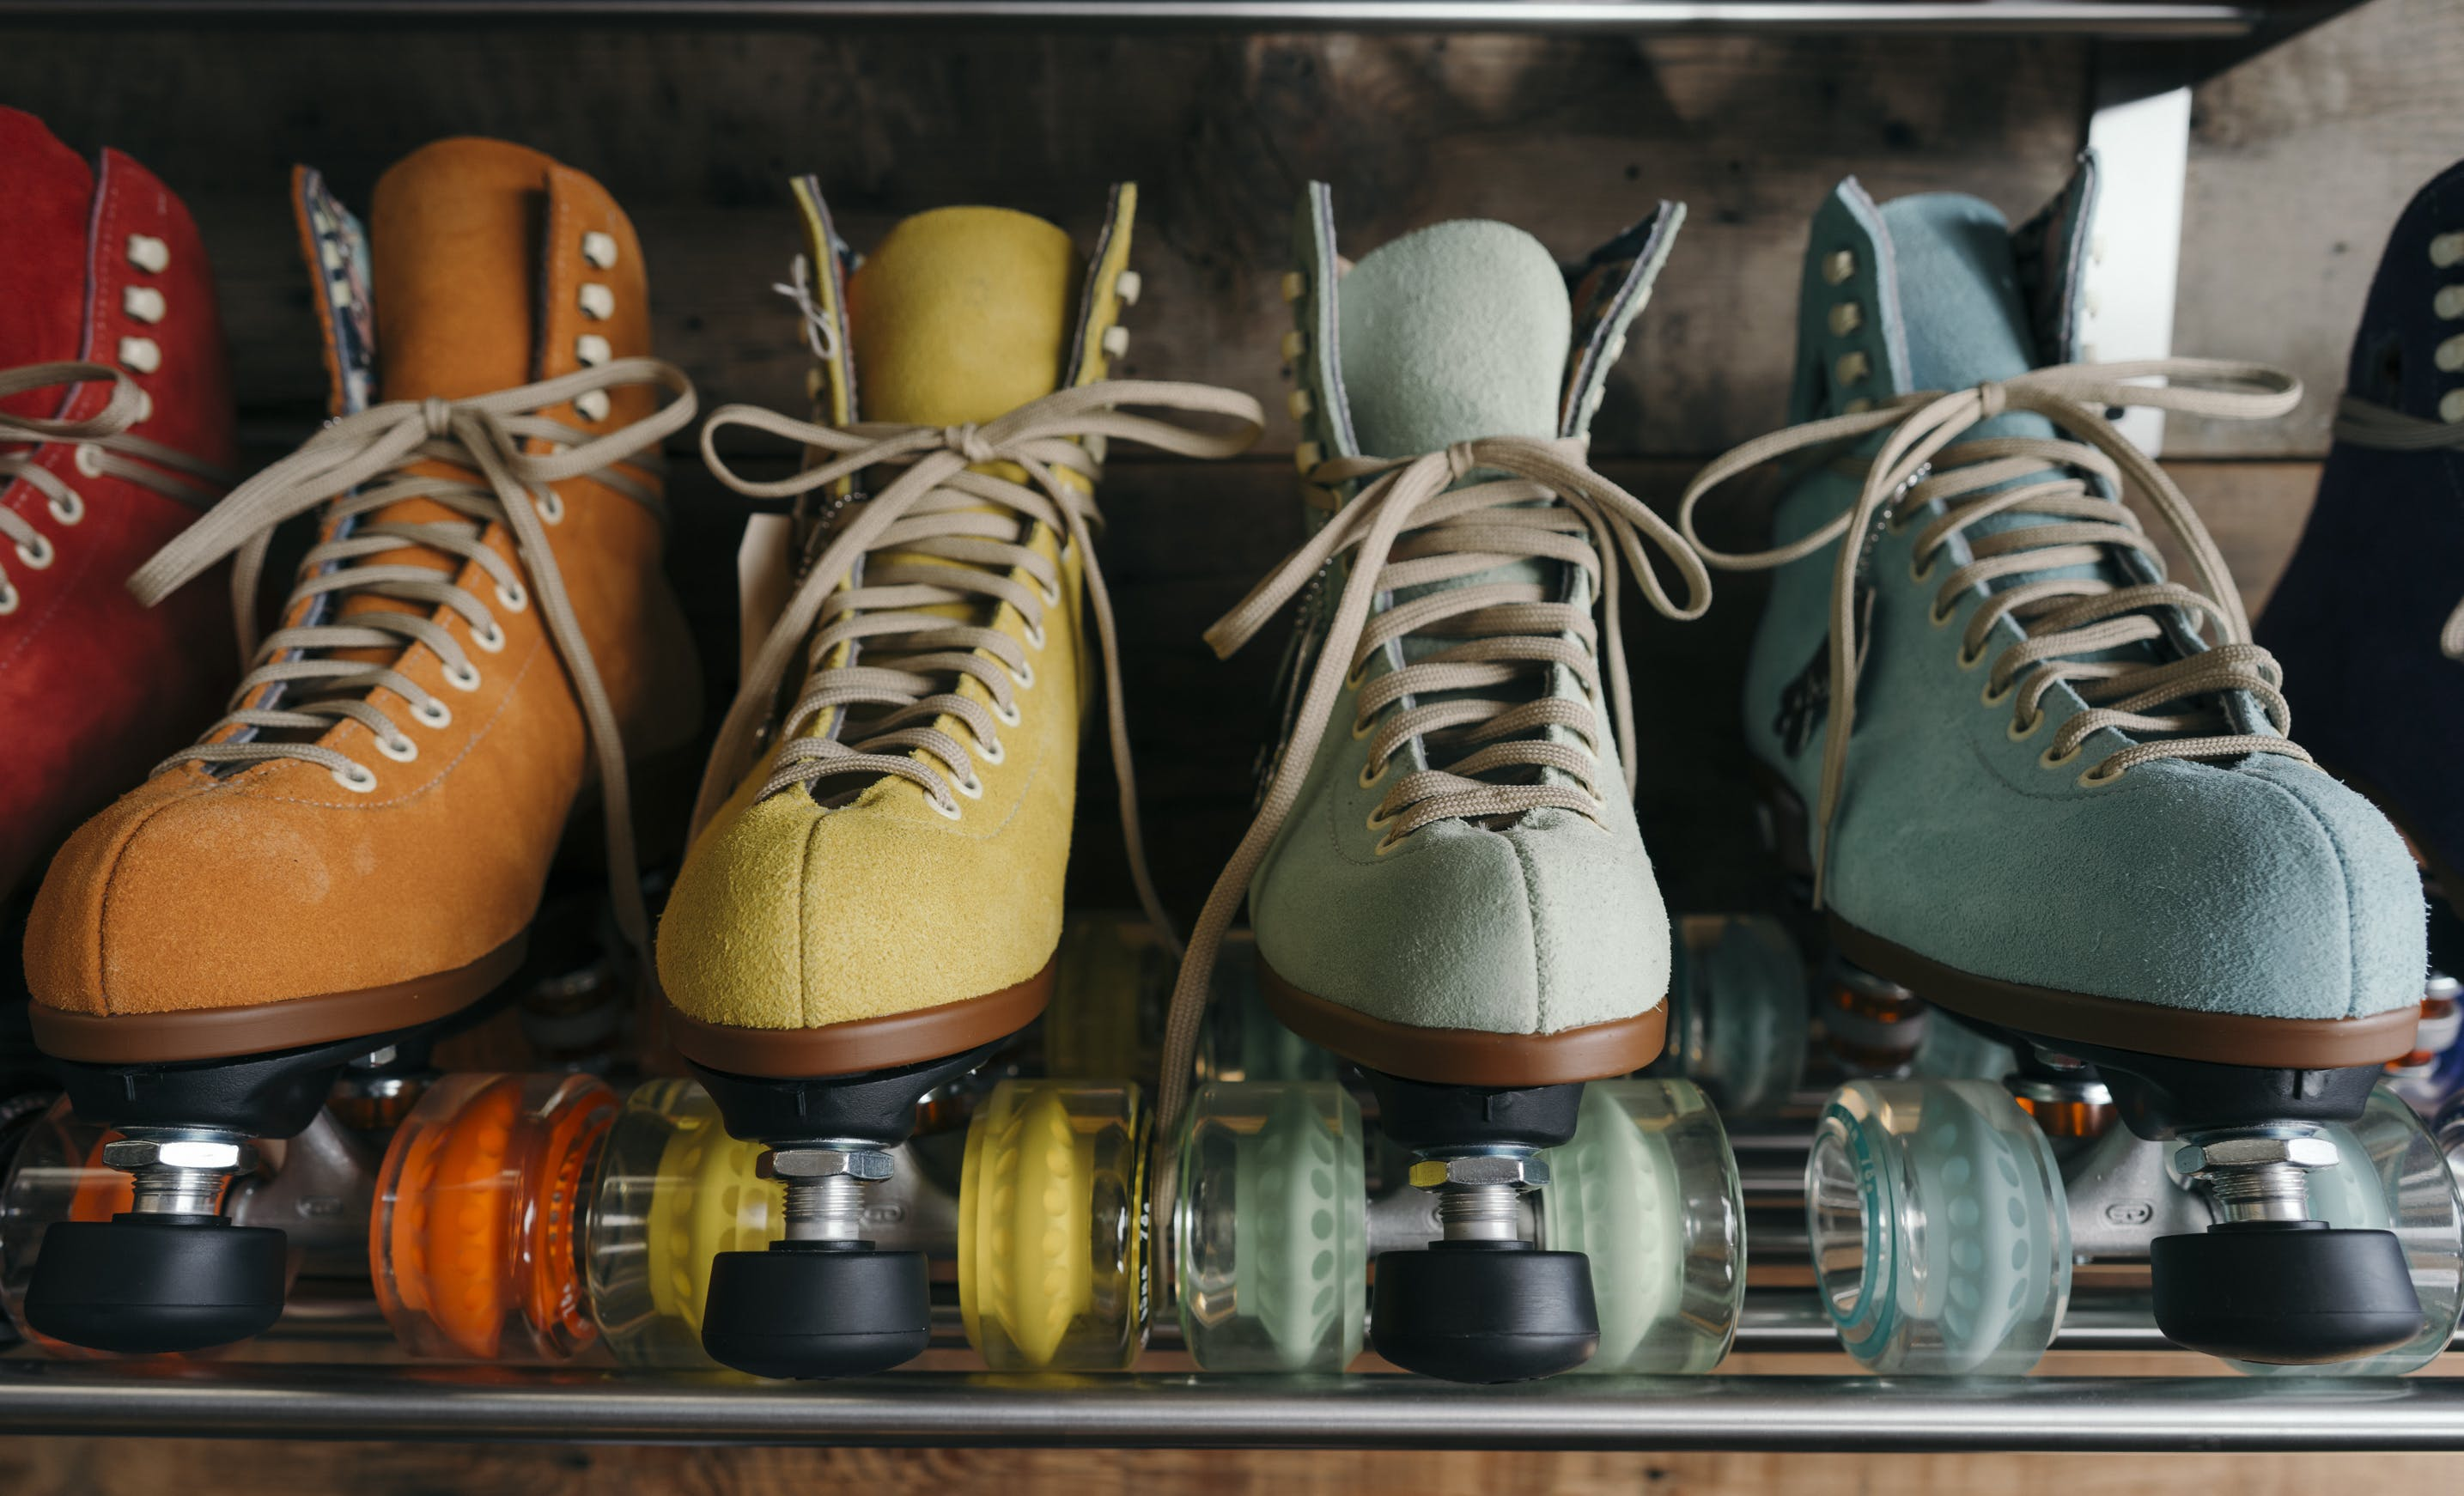 Four Unpaired Assorted-color Roller Skates